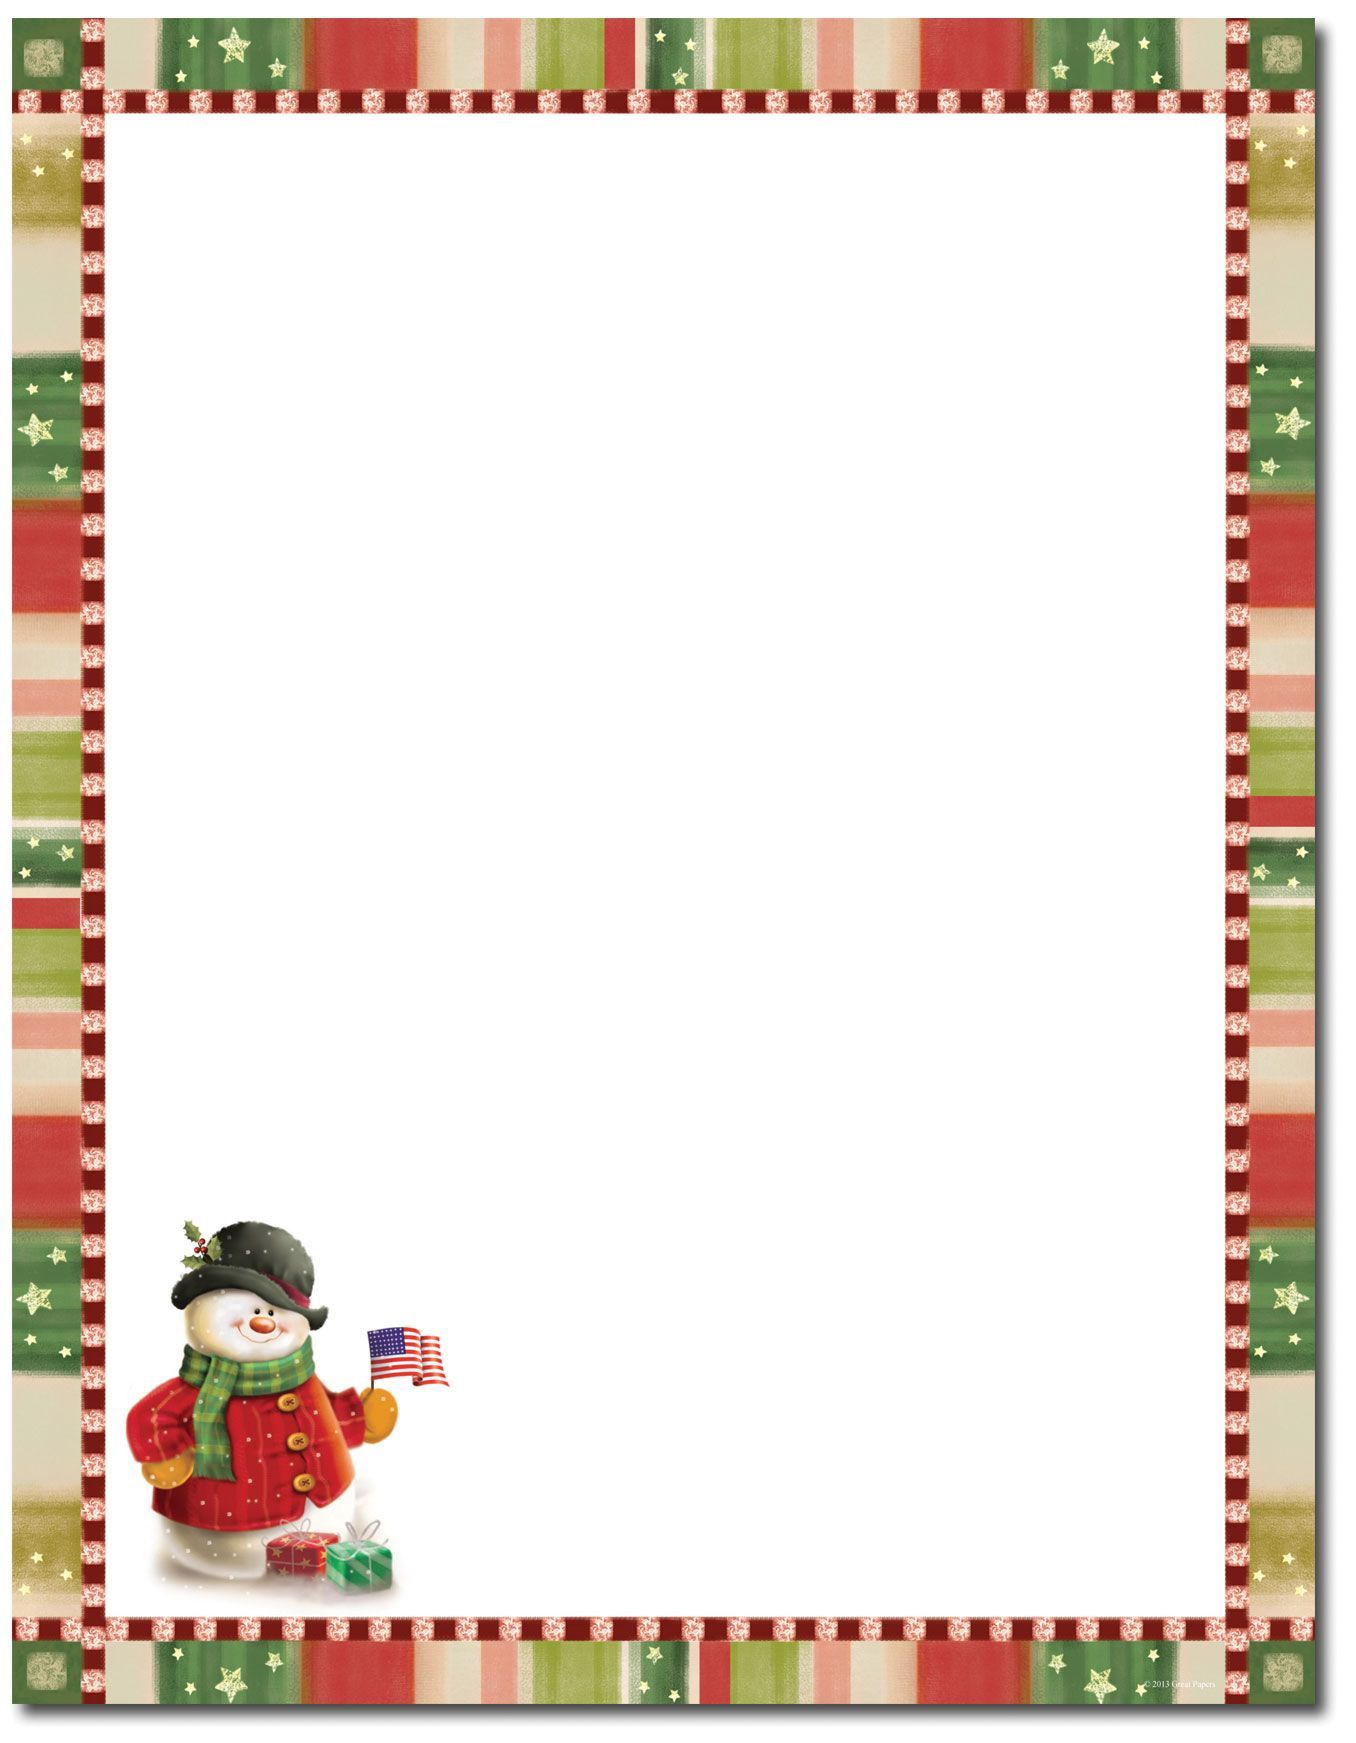 000 Awesome Free Holiday Stationery Template For Word Inspiration Full